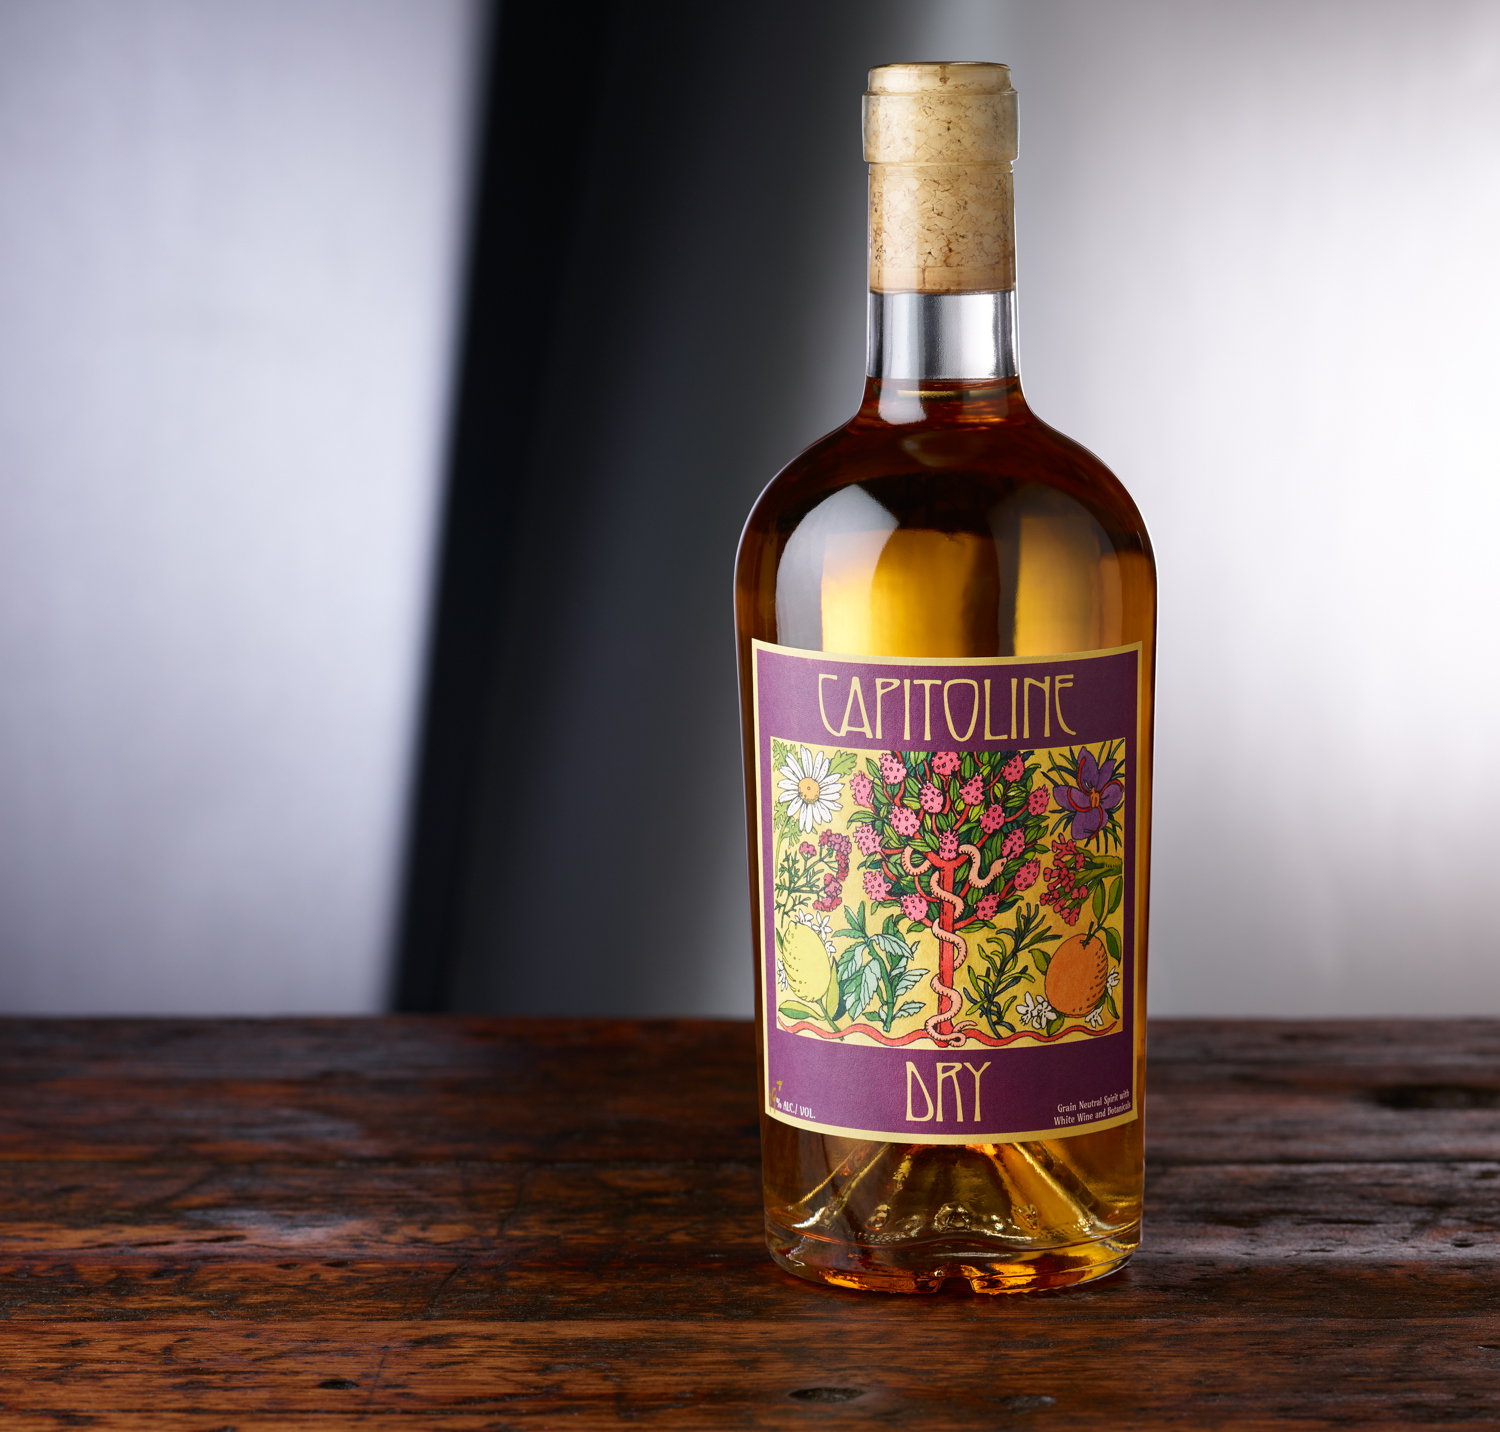 Bottlings — Capitoline Vermouth & Aperitivi